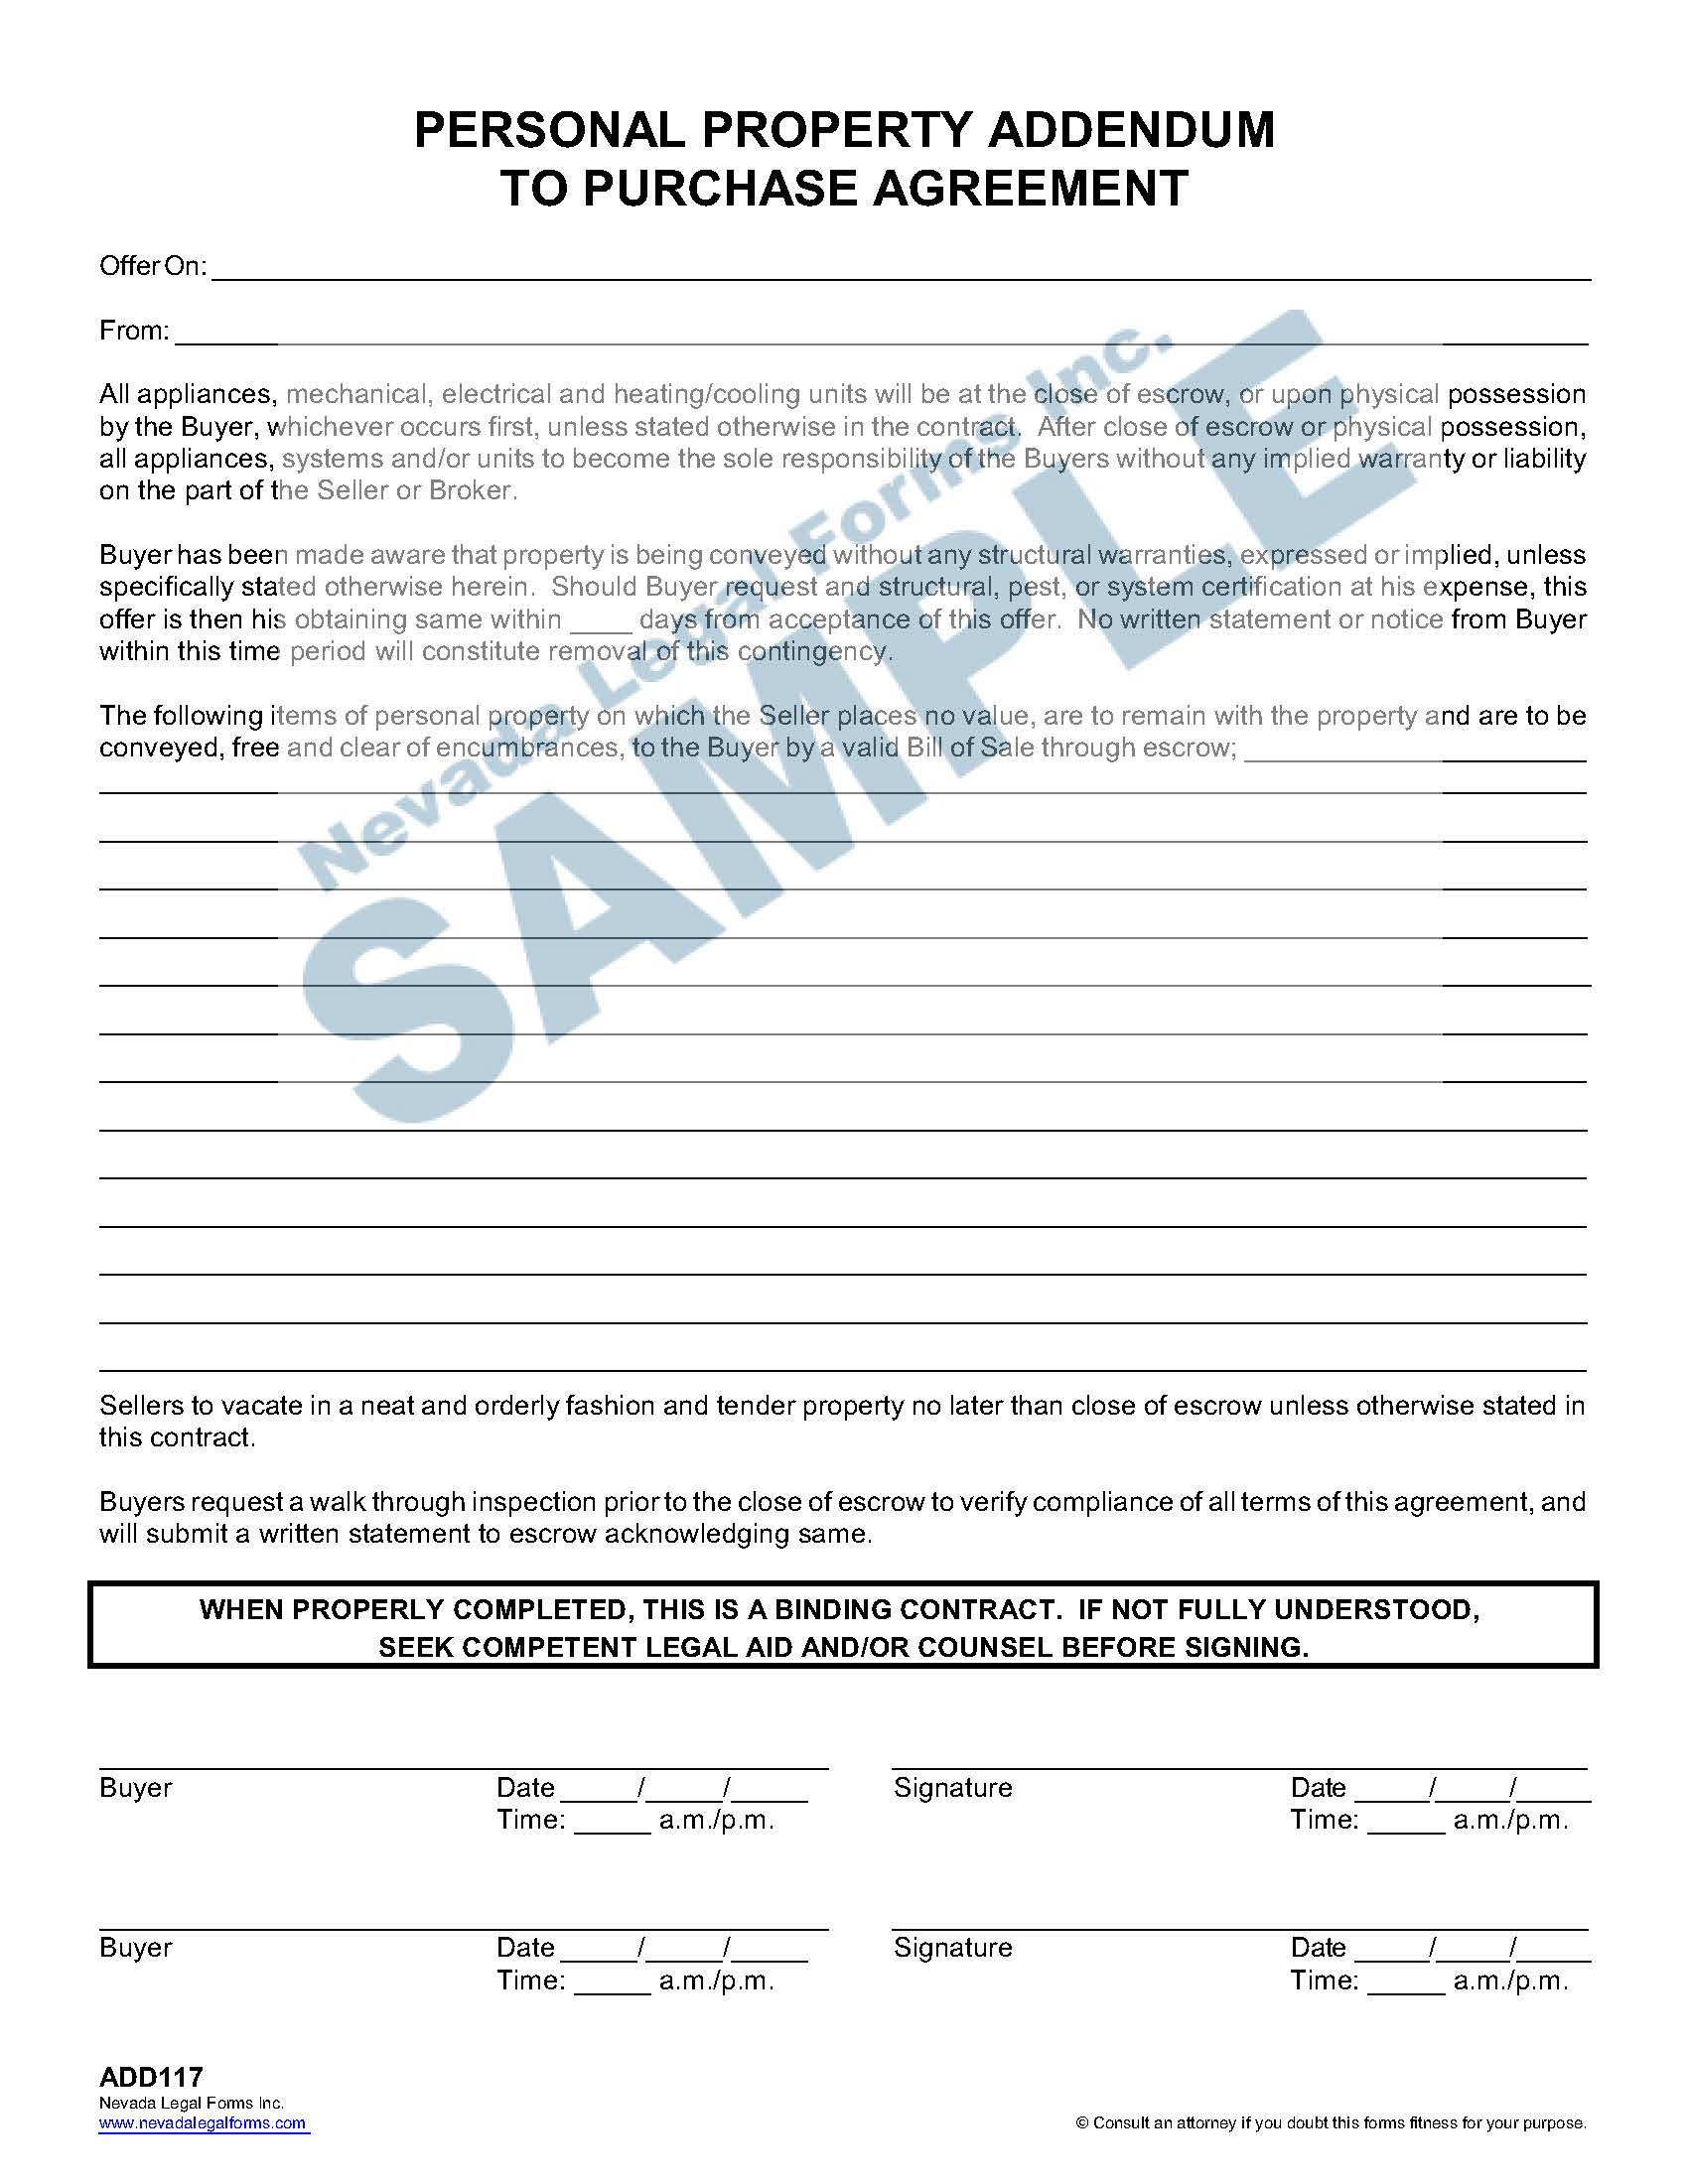 Personal Property Addendum To Purchase Agreement